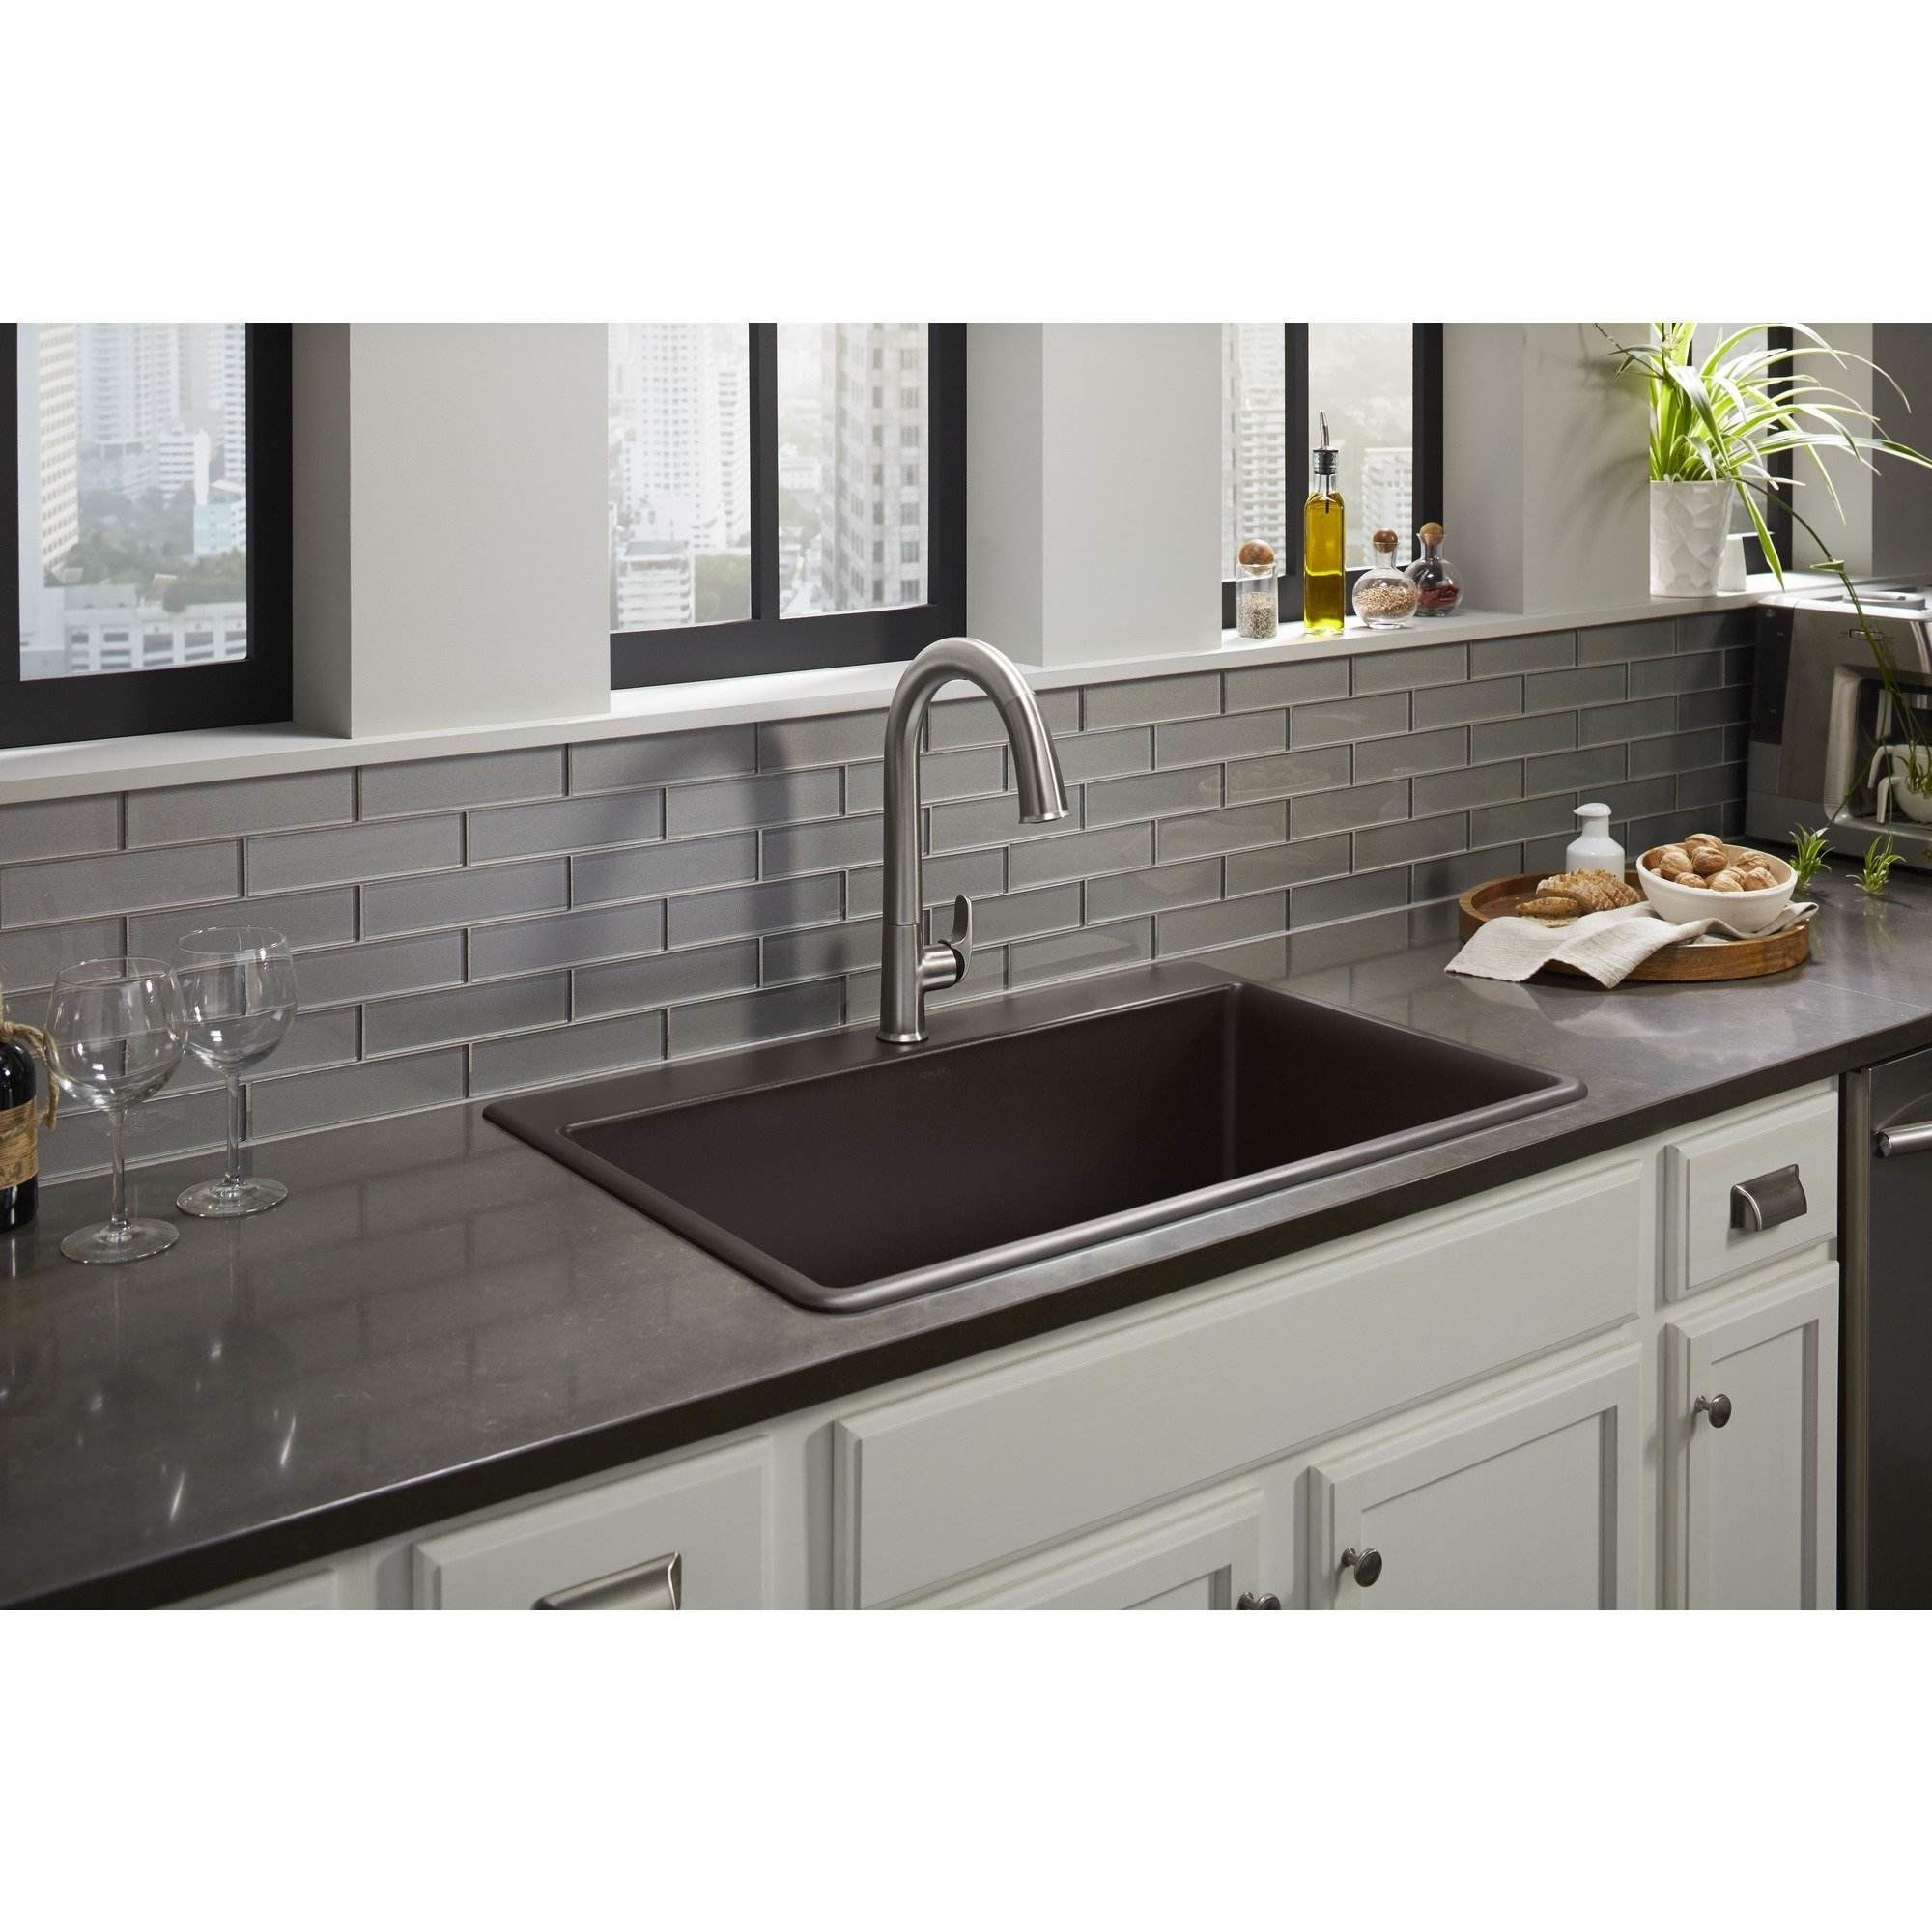 Neoroc Kitchen Sinks In Black